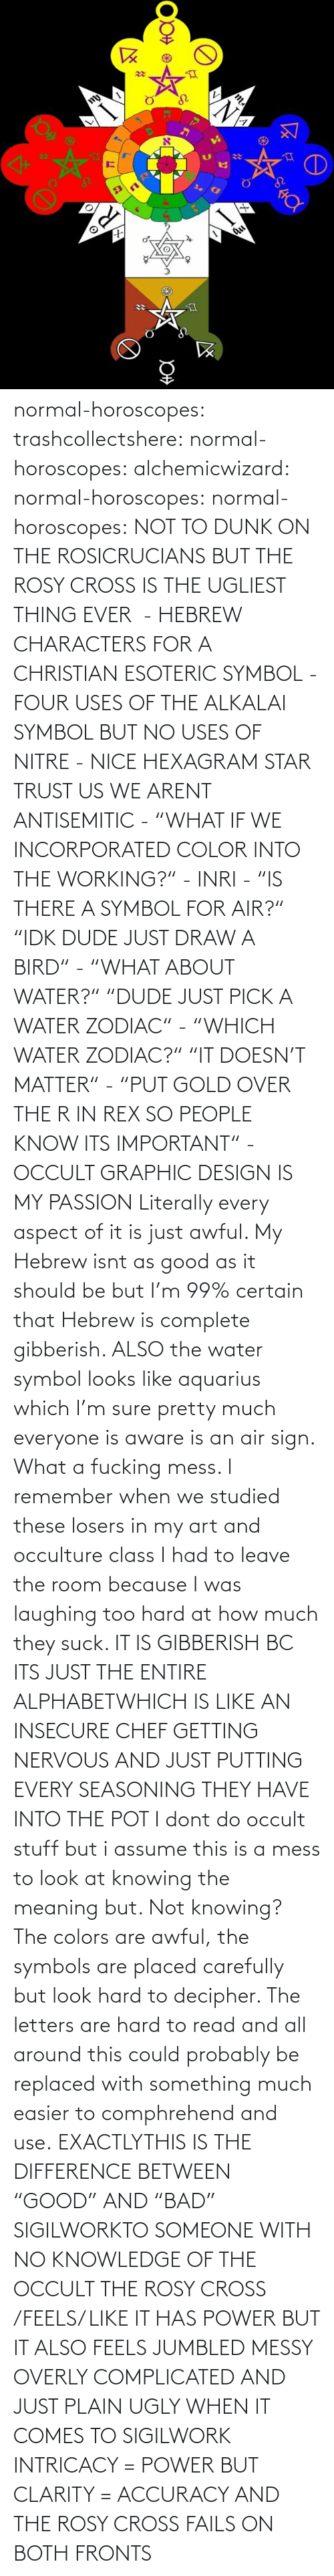 "Both: normal-horoscopes:  trashcollectshere: normal-horoscopes:   alchemicwizard:  normal-horoscopes:  normal-horoscopes: NOT TO DUNK ON THE ROSICRUCIANS BUT THE ROSY CROSS IS THE UGLIEST THING EVER  - HEBREW CHARACTERS FOR A CHRISTIAN ESOTERIC SYMBOL - FOUR USES OF THE ALKALAI SYMBOL BUT NO USES OF NITRE - NICE HEXAGRAM STAR TRUST US WE ARENT ANTISEMITIC - ""WHAT IF WE INCORPORATED COLOR INTO THE WORKING?"" - INRI - ""IS THERE A SYMBOL FOR AIR?"" ""IDK DUDE JUST DRAW A BIRD"" - ""WHAT ABOUT WATER?"" ""DUDE JUST PICK A WATER ZODIAC"" - ""WHICH WATER ZODIAC?"" ""IT DOESN'T MATTER"" - ""PUT GOLD OVER THE R IN REX SO PEOPLE KNOW ITS IMPORTANT"" - OCCULT GRAPHIC DESIGN IS MY PASSION  Literally every aspect of it is just awful. My Hebrew isnt as good as it should be but I'm 99% certain that Hebrew is complete gibberish.  ALSO the water symbol looks like aquarius which I'm sure pretty much everyone is aware is an air sign. What a fucking mess.  I remember when we studied these losers in my art and occulture class I had to leave the room because I was laughing too hard at how much they suck.   IT IS GIBBERISH BC ITS JUST THE ENTIRE ALPHABETWHICH IS LIKE AN INSECURE CHEF GETTING NERVOUS AND JUST PUTTING EVERY SEASONING THEY HAVE INTO THE POT     I dont do occult stuff but i assume this is a mess to look at knowing the meaning but. Not knowing? The colors are awful, the symbols are placed carefully but look hard to decipher. The letters are hard to read and all around this could probably be replaced with something much easier to comphrehend and use.  EXACTLYTHIS IS THE DIFFERENCE BETWEEN ""GOOD"" AND ""BAD"" SIGILWORKTO SOMEONE WITH NO KNOWLEDGE OF THE OCCULT THE ROSY CROSS /FEELS/ LIKE IT HAS POWER BUT IT ALSO FEELS JUMBLED MESSY OVERLY COMPLICATED AND JUST PLAIN UGLY WHEN IT COMES TO SIGILWORK INTRICACY = POWER BUT CLARITY = ACCURACY AND THE ROSY CROSS FAILS ON BOTH FRONTS"